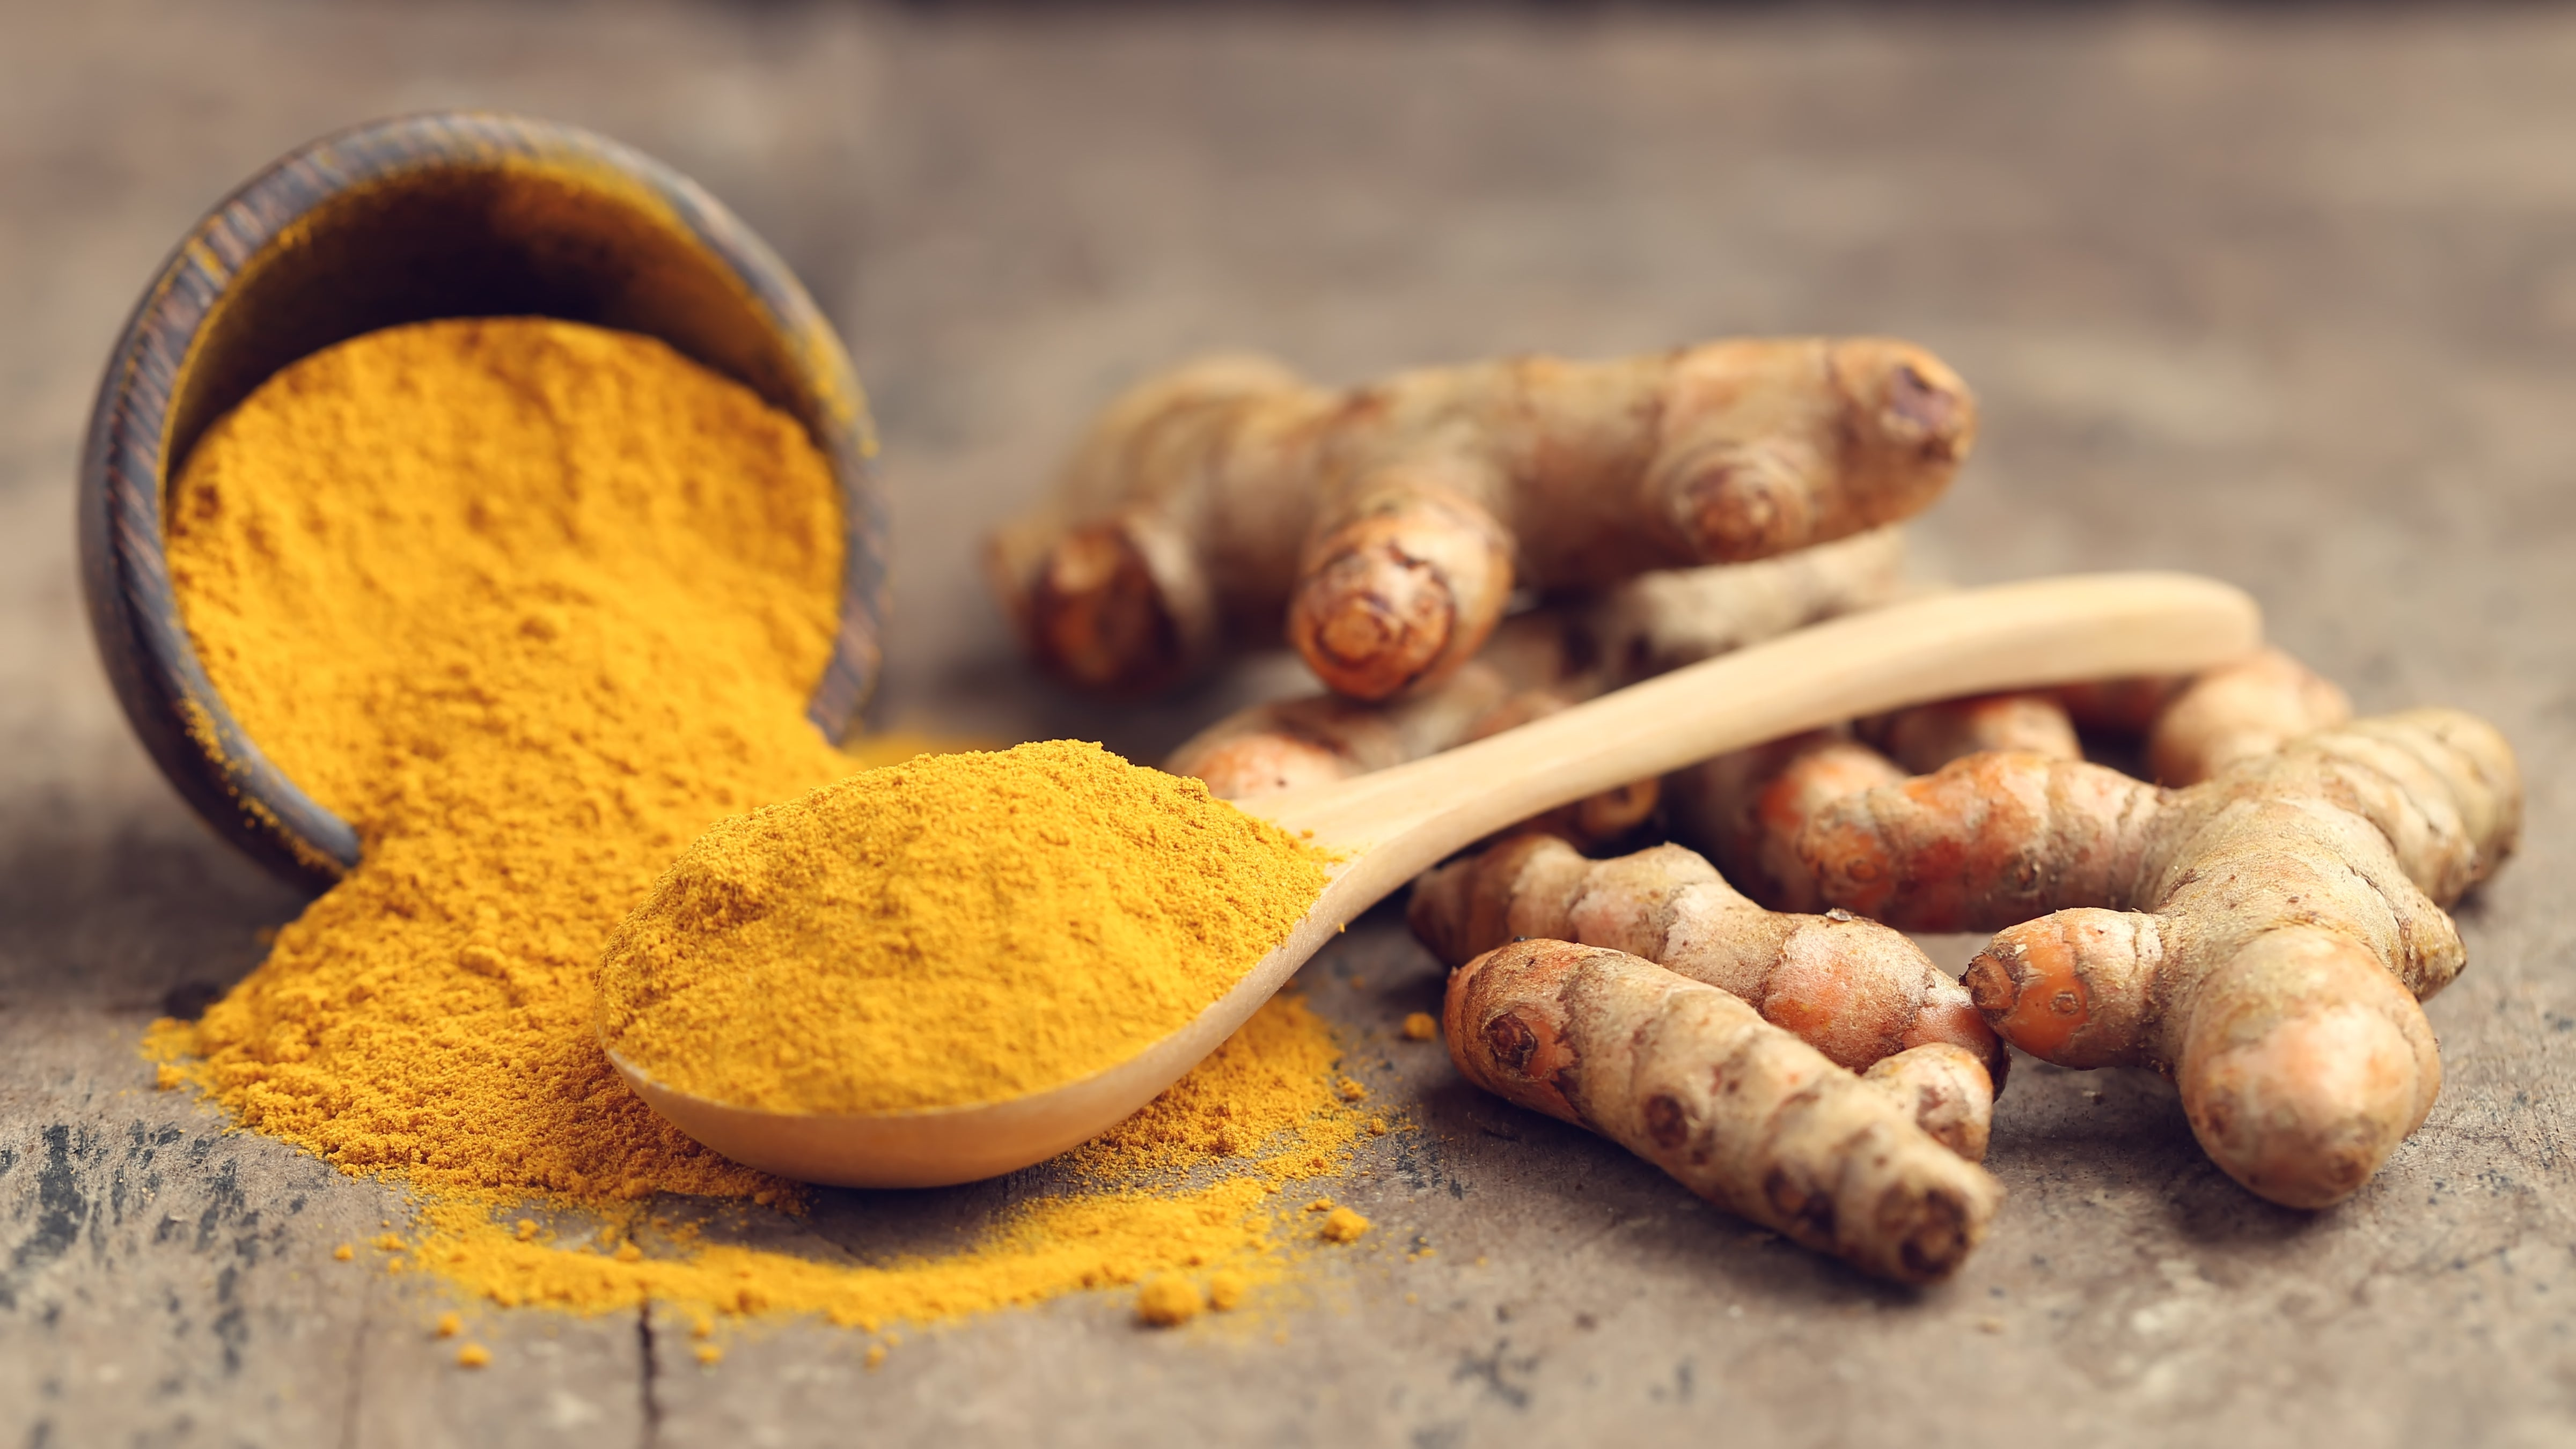 natural pain relief, home remedy for pain relief, turmeric as a natural remedy